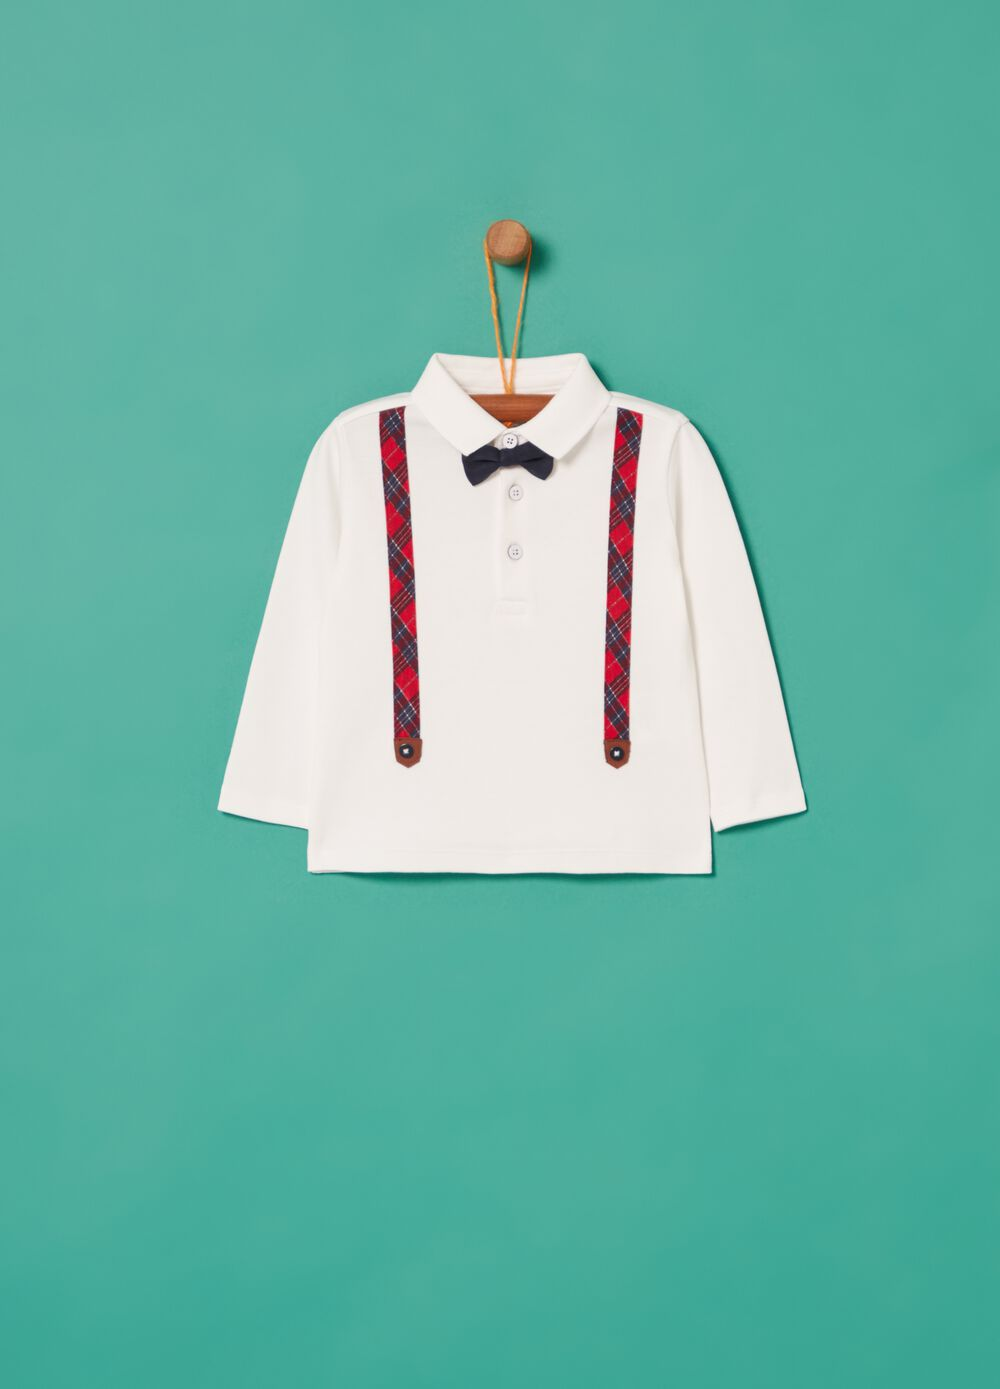 100% organic cotton polo shirt with braces and bow tie